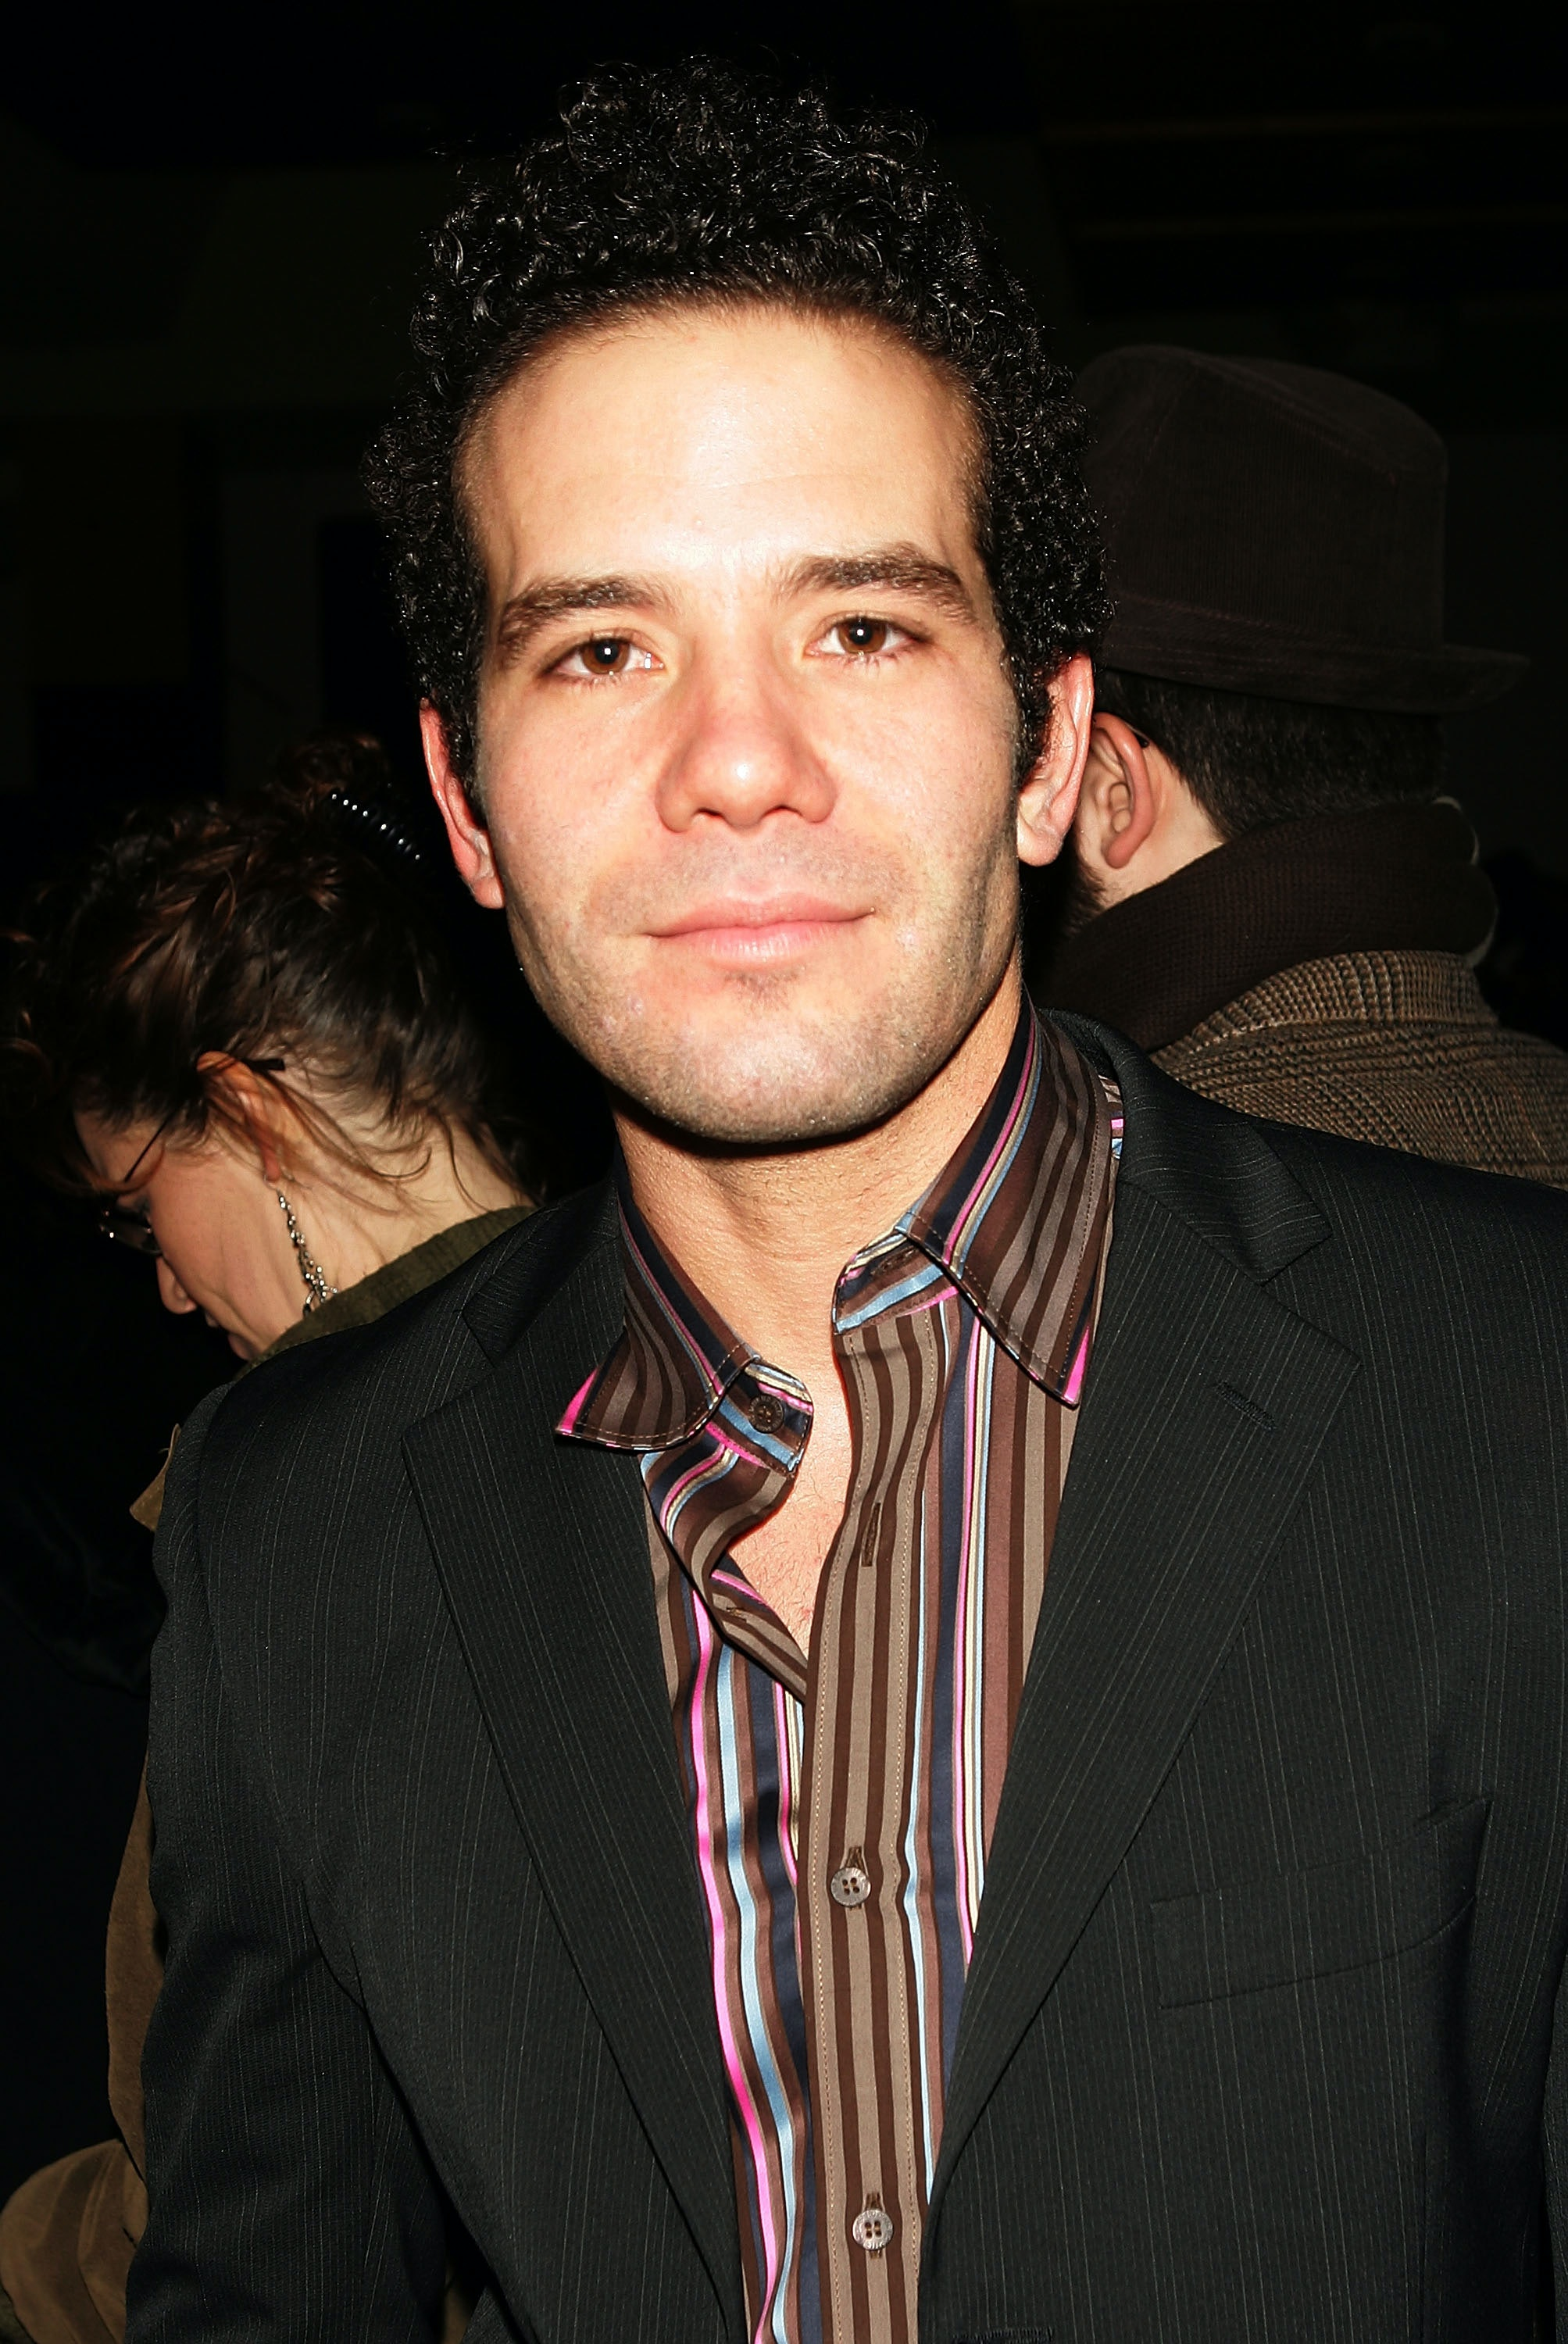 aaron lohr instagramaaron lohr after today, aaron lohr, aaron lohr idina menzel, aaron lohr rent, aaron lohr relationships, aaron lohr net worth, aaron lohr ethnicity, aaron lohr twitter, aaron lohr facebook, aaron lohr newsies, aaron lohr imdb, aaron lohr obituary, aaron lohr images, aaron lohr idina, aaron lohr instagram, aaron lohr jewish, aaron lohr singing, aaron lohr photos, aaron lohr dating, aaron lohr broadway